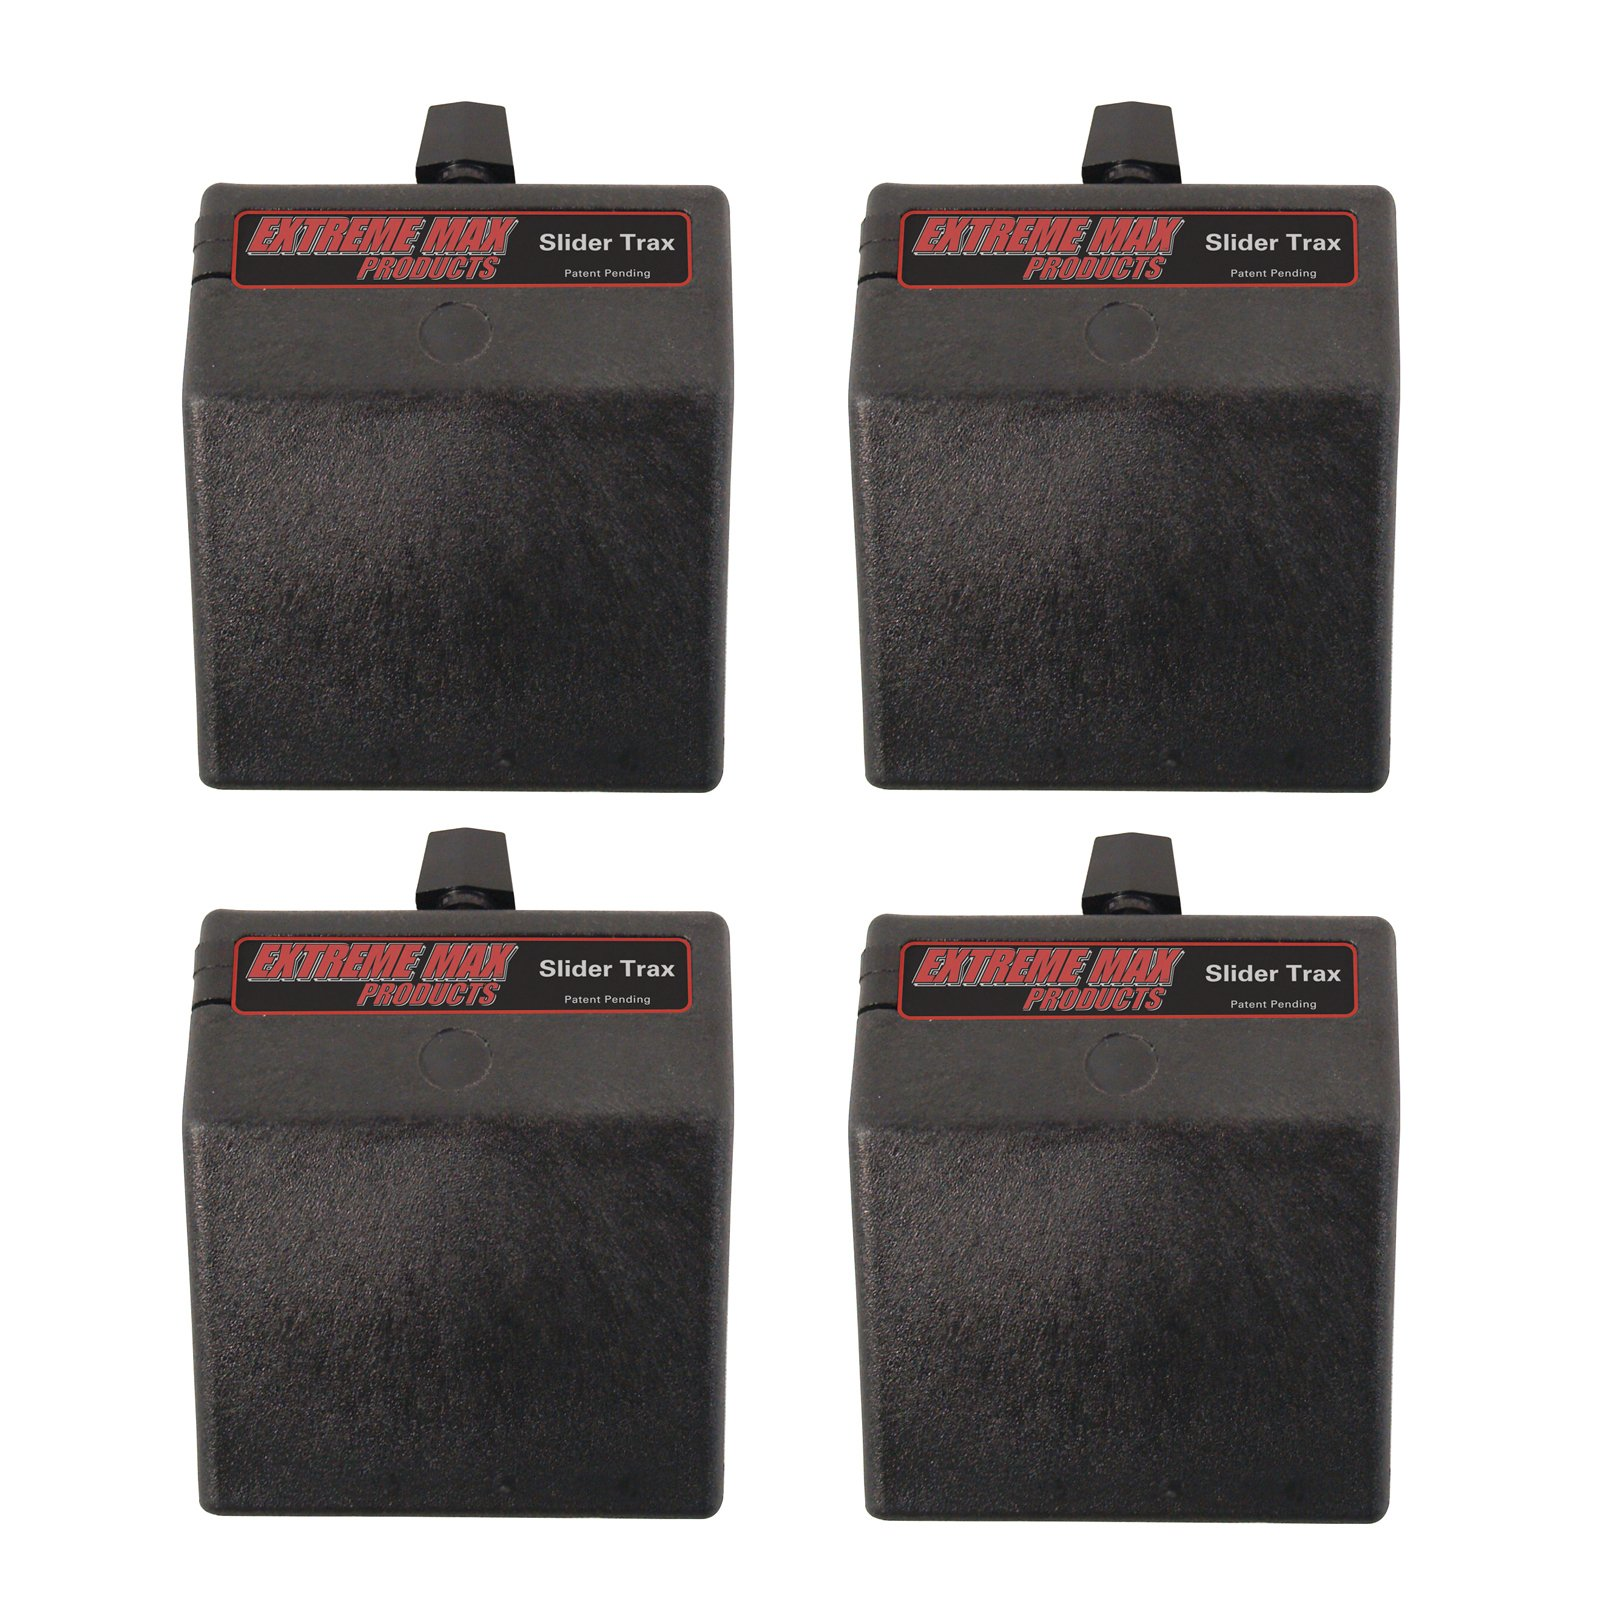 Extreme Max 3004.3100 45° Base for Slider Trax / OEM Marine Accessory Mounting Systems, 4 Pack by Extreme Max